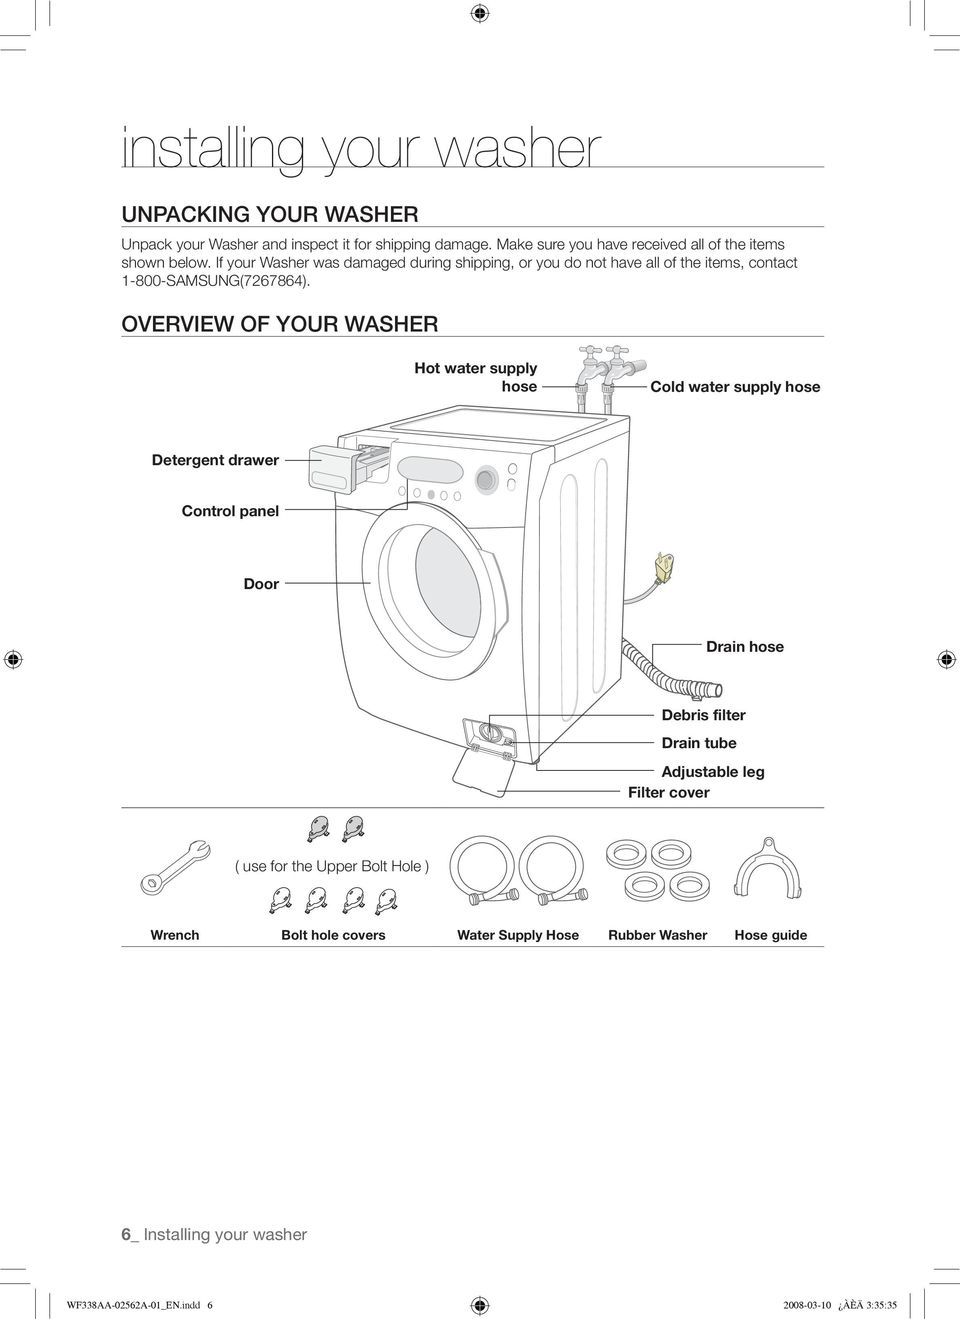 If your Washer was damaged during shipping, or you do not have all of the items, contact 1-800-SAMSUNG(7267864).